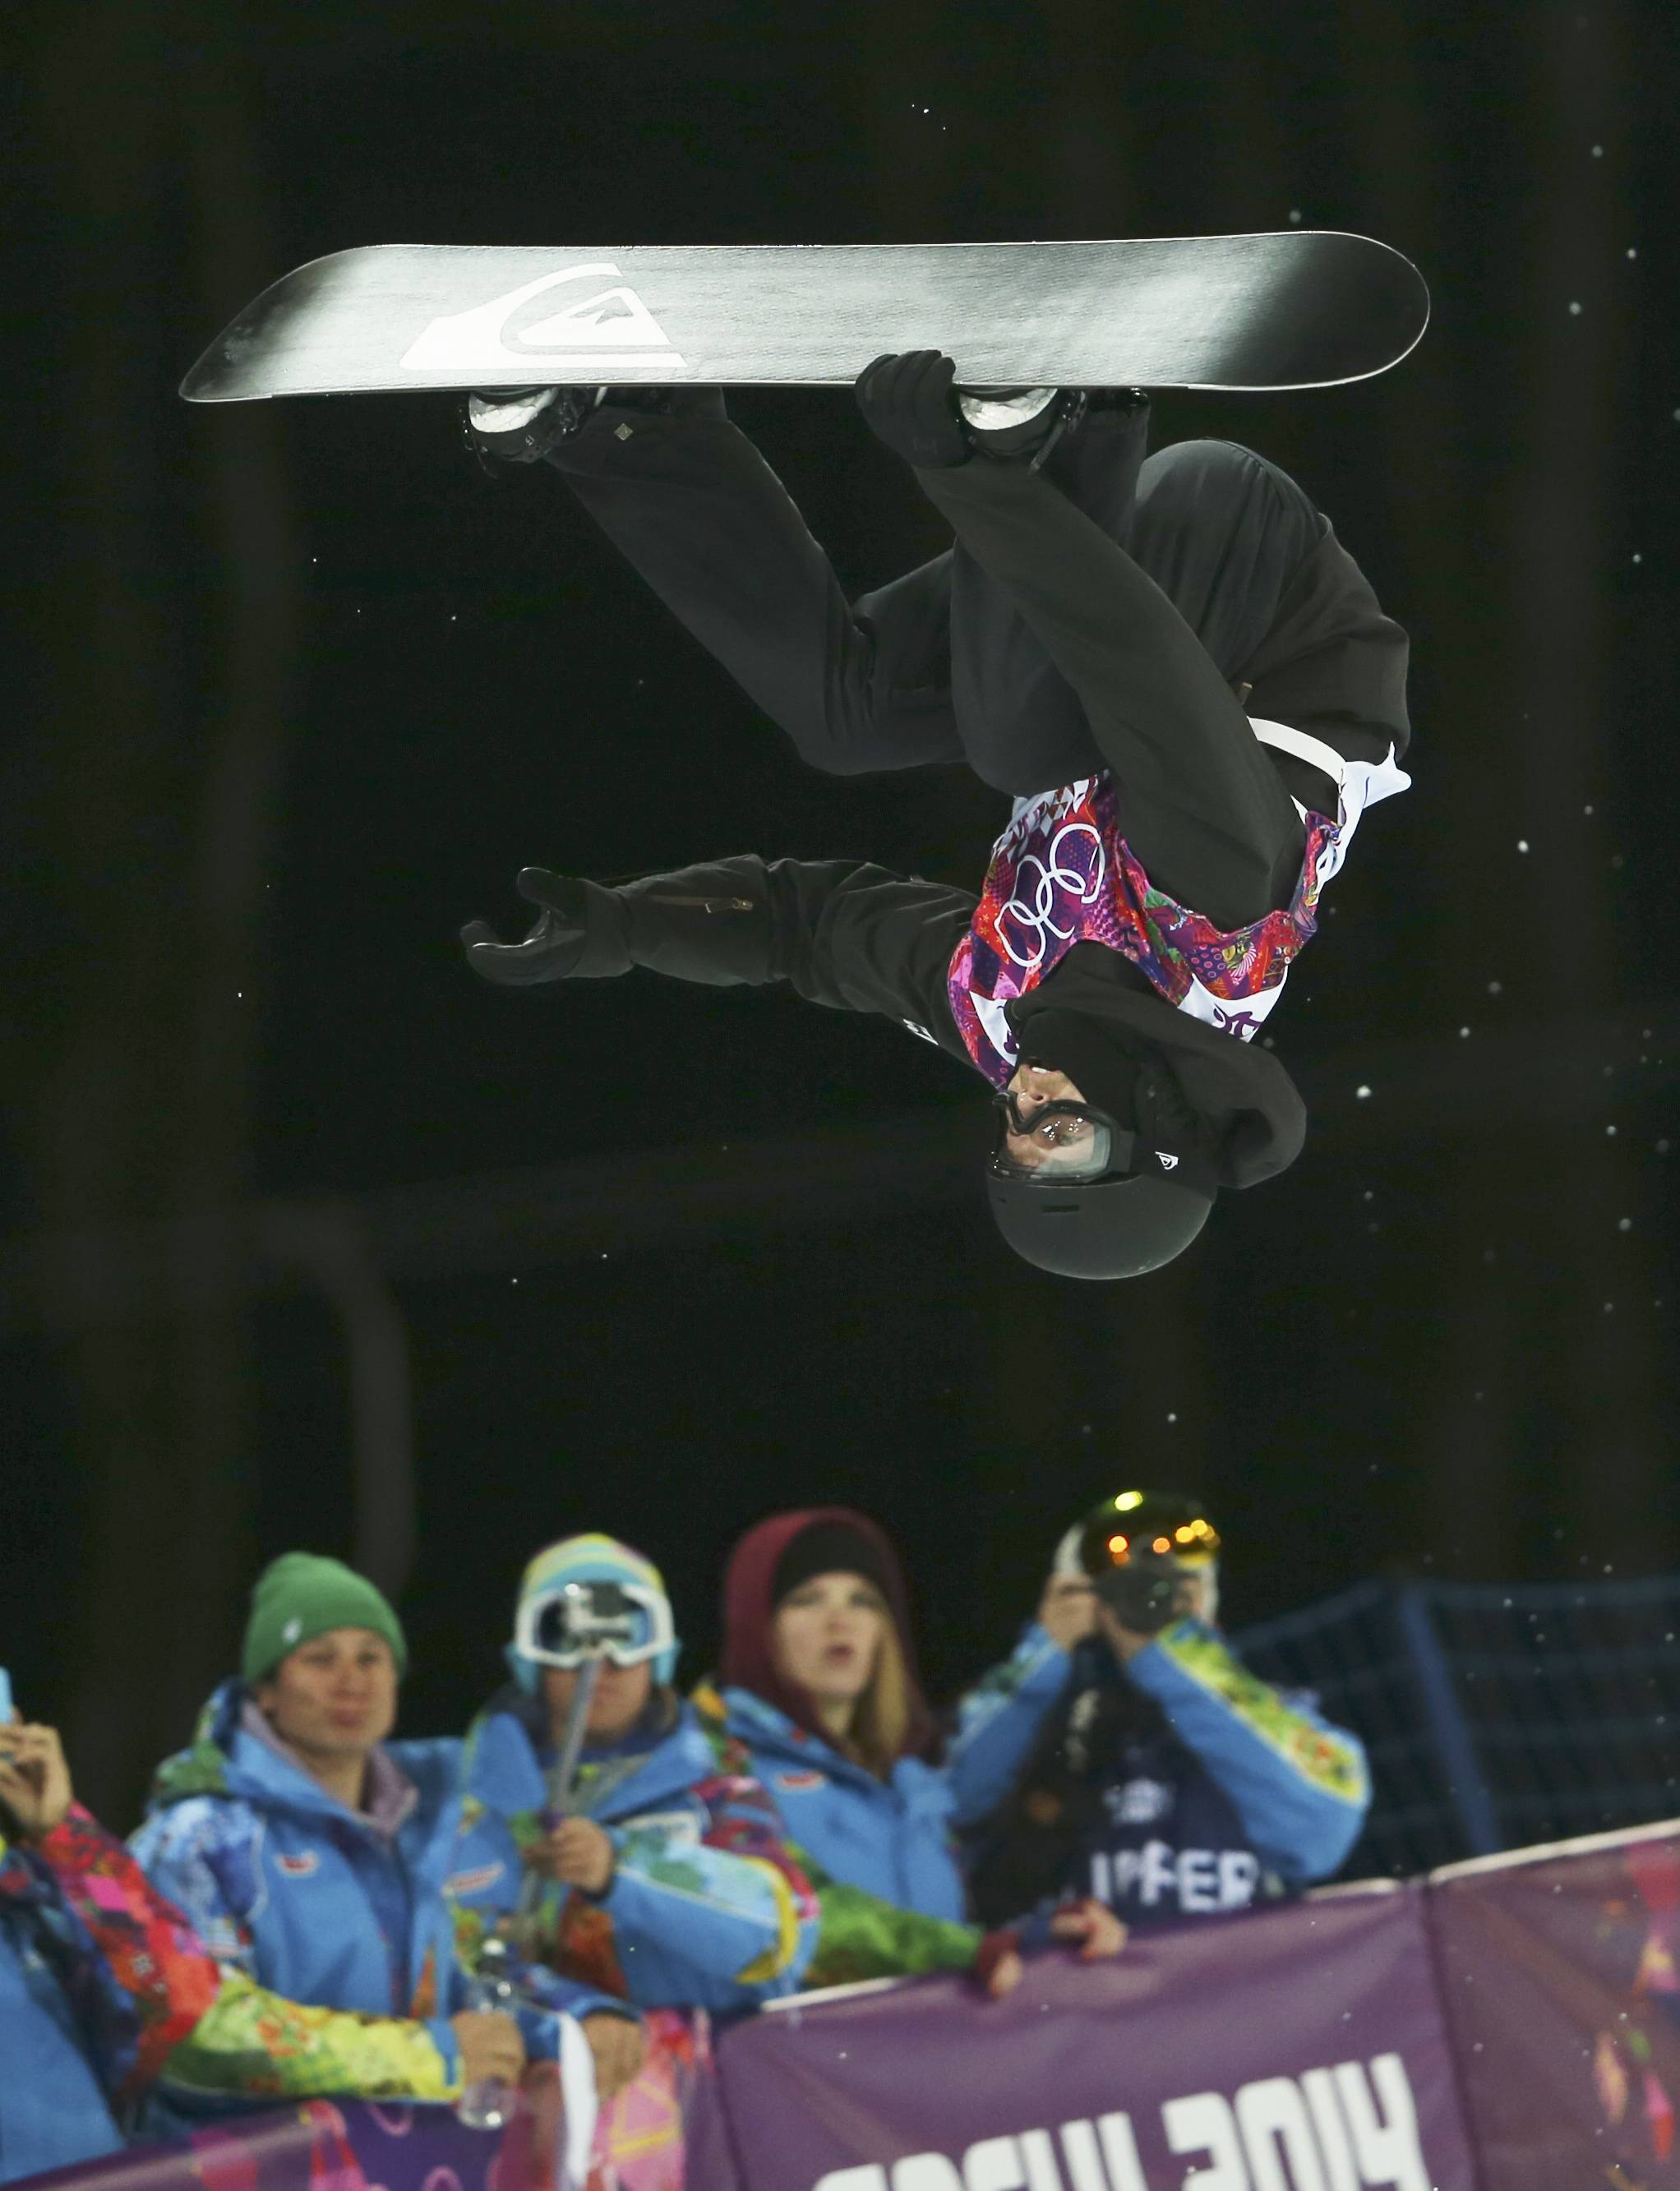 Switzerland's Iouri Podladtchikov competes in the men's snowboard halfpipe final. Podladtchikov won the gold medal.